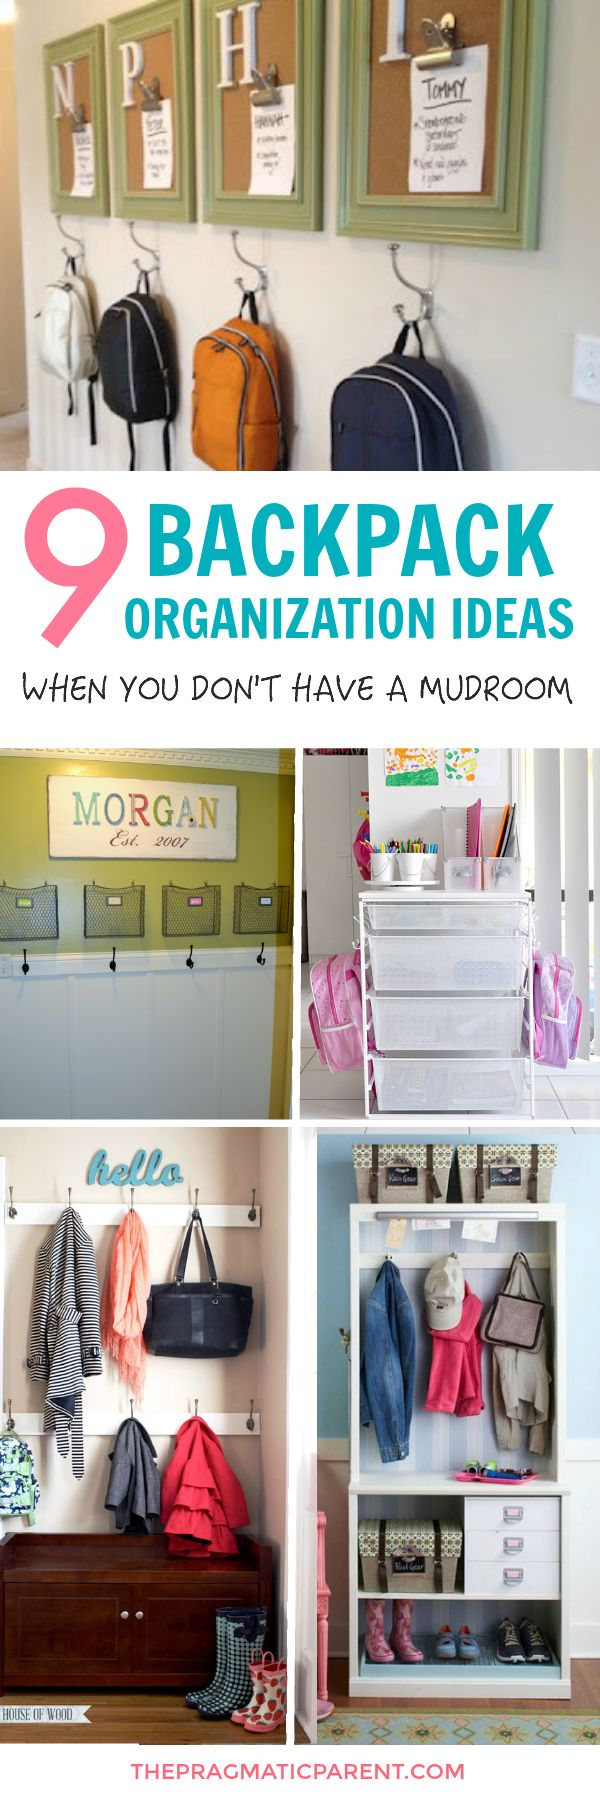 Eliminate disorganization & stress when nothing is in the right spot. 9 Easy Backpack station ideas to get organized & always find what you need. Organize backpacks, school supplies and papers, shoes, jackets and get out the door on time when you and your kids have one central drop zone.  via @https://www.pinterest.com/PragmaticParent/